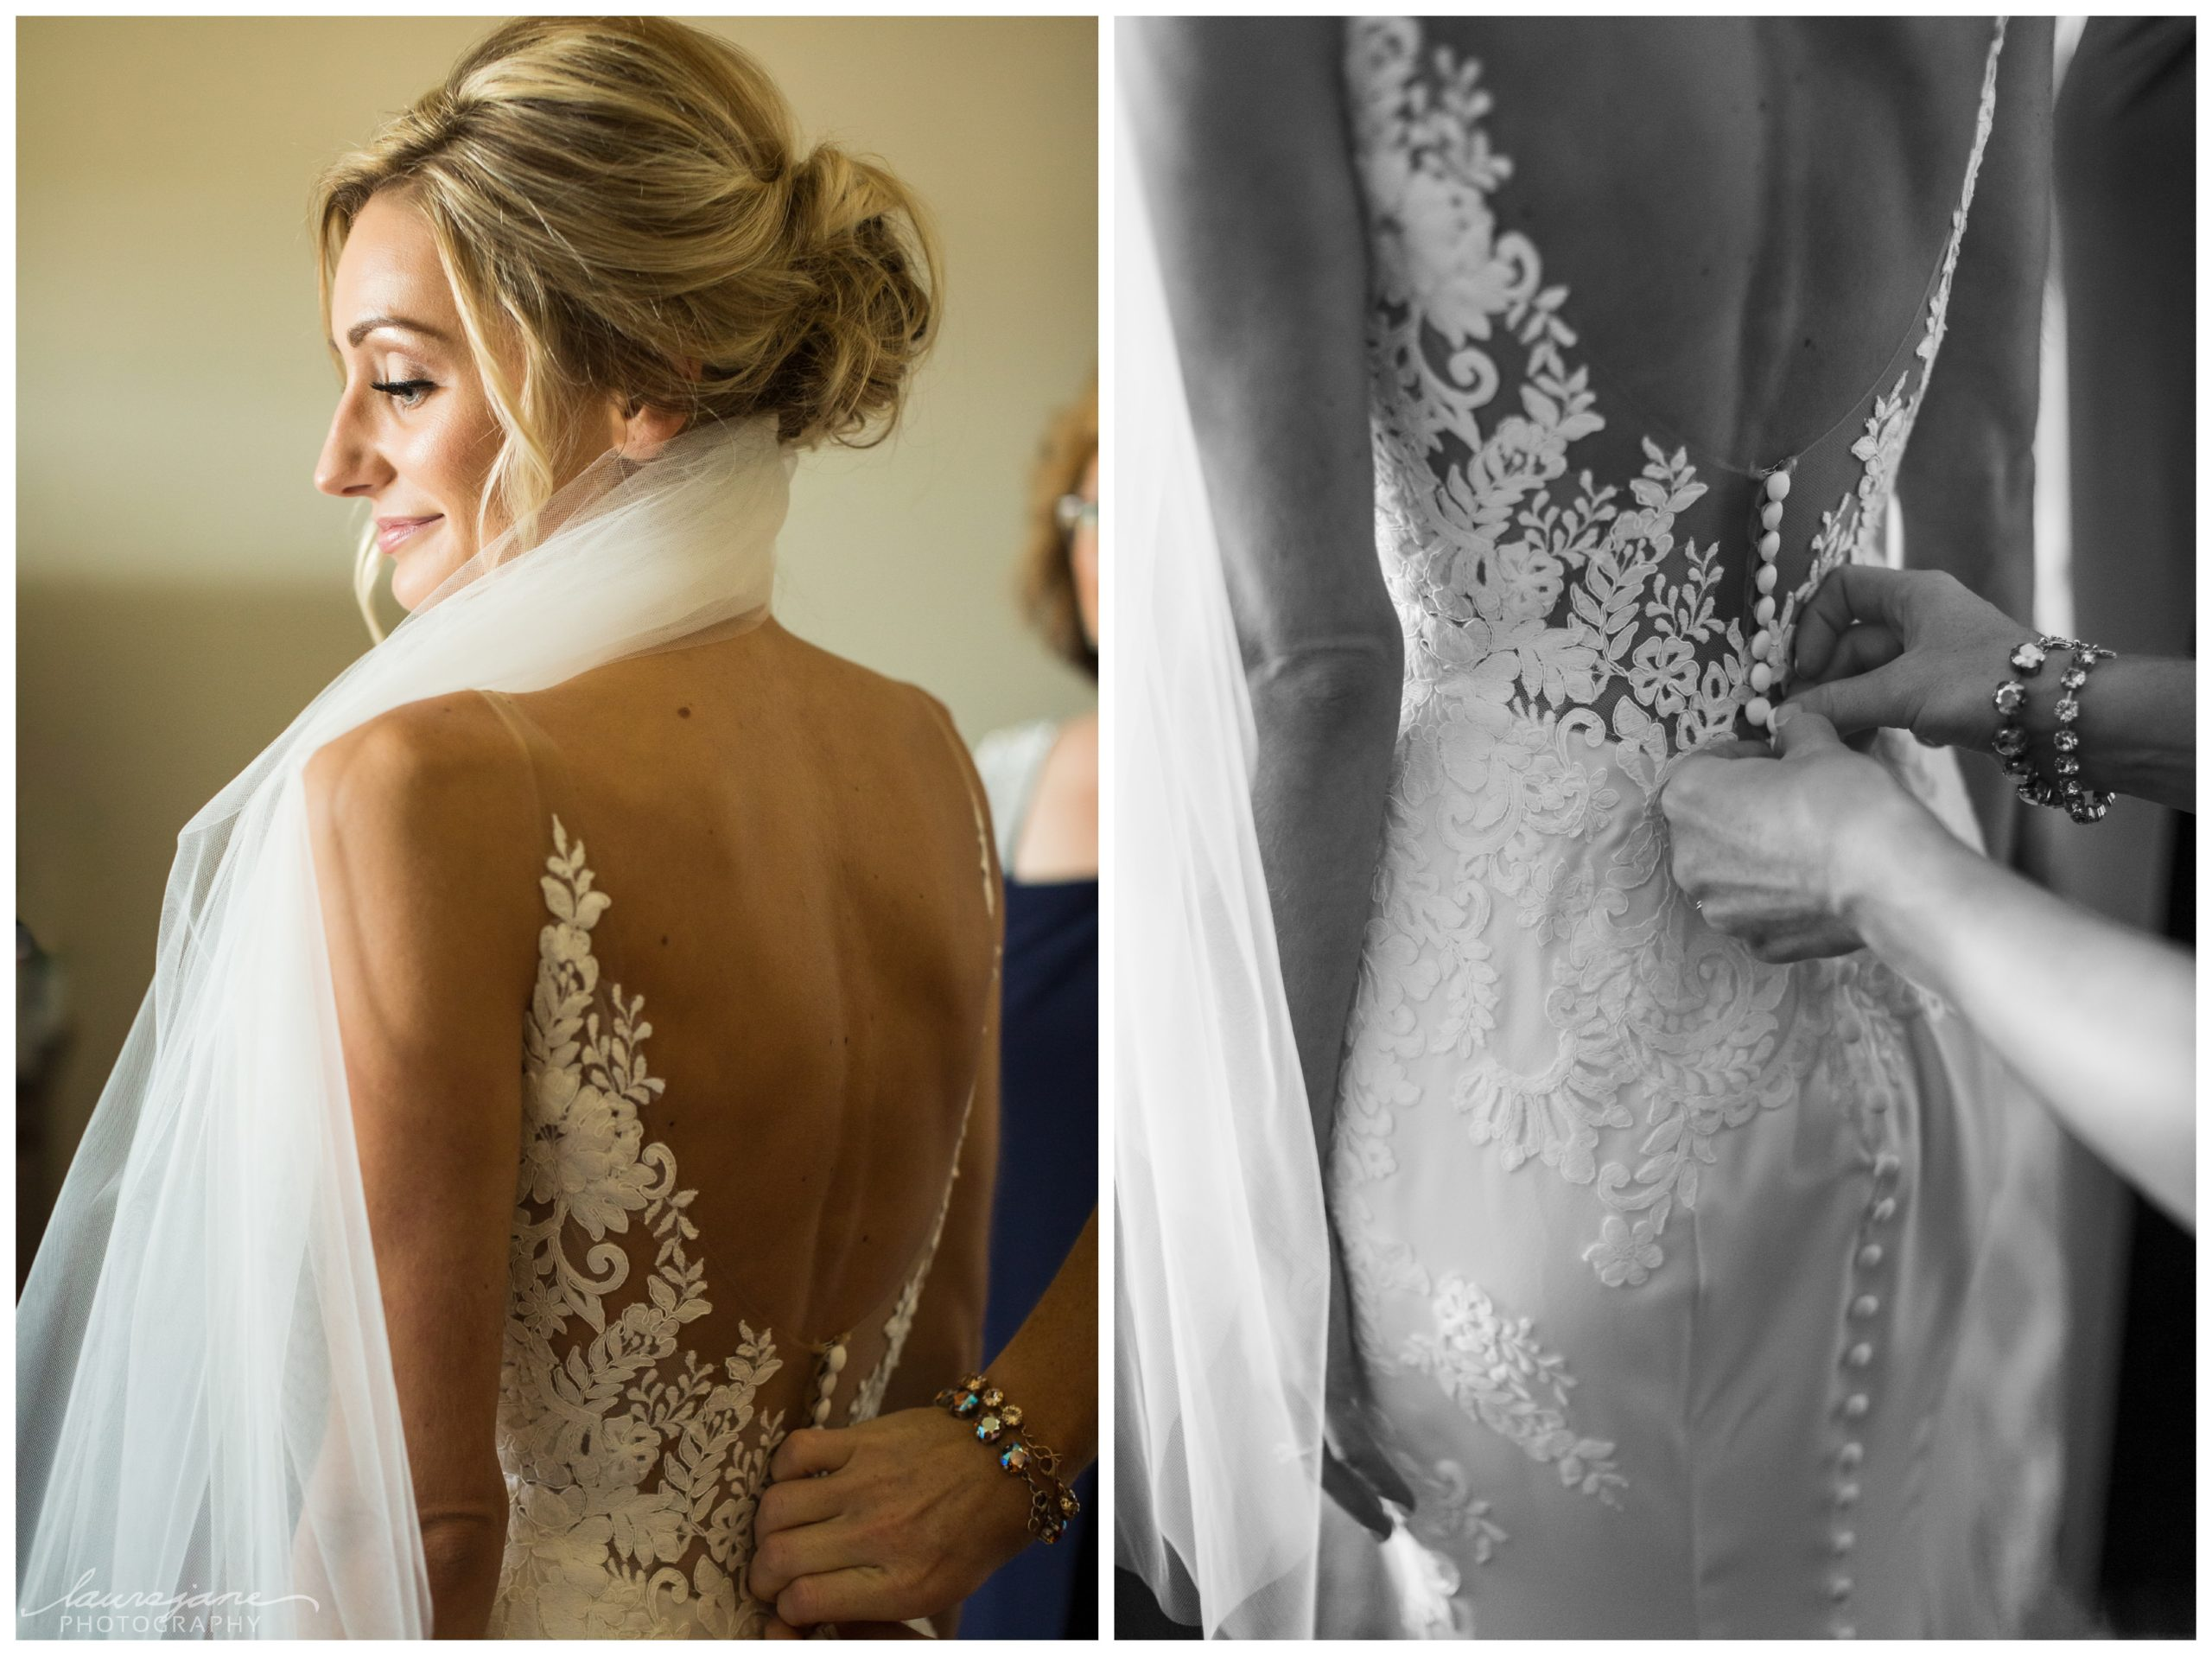 Stunning Bridal Prep Photos